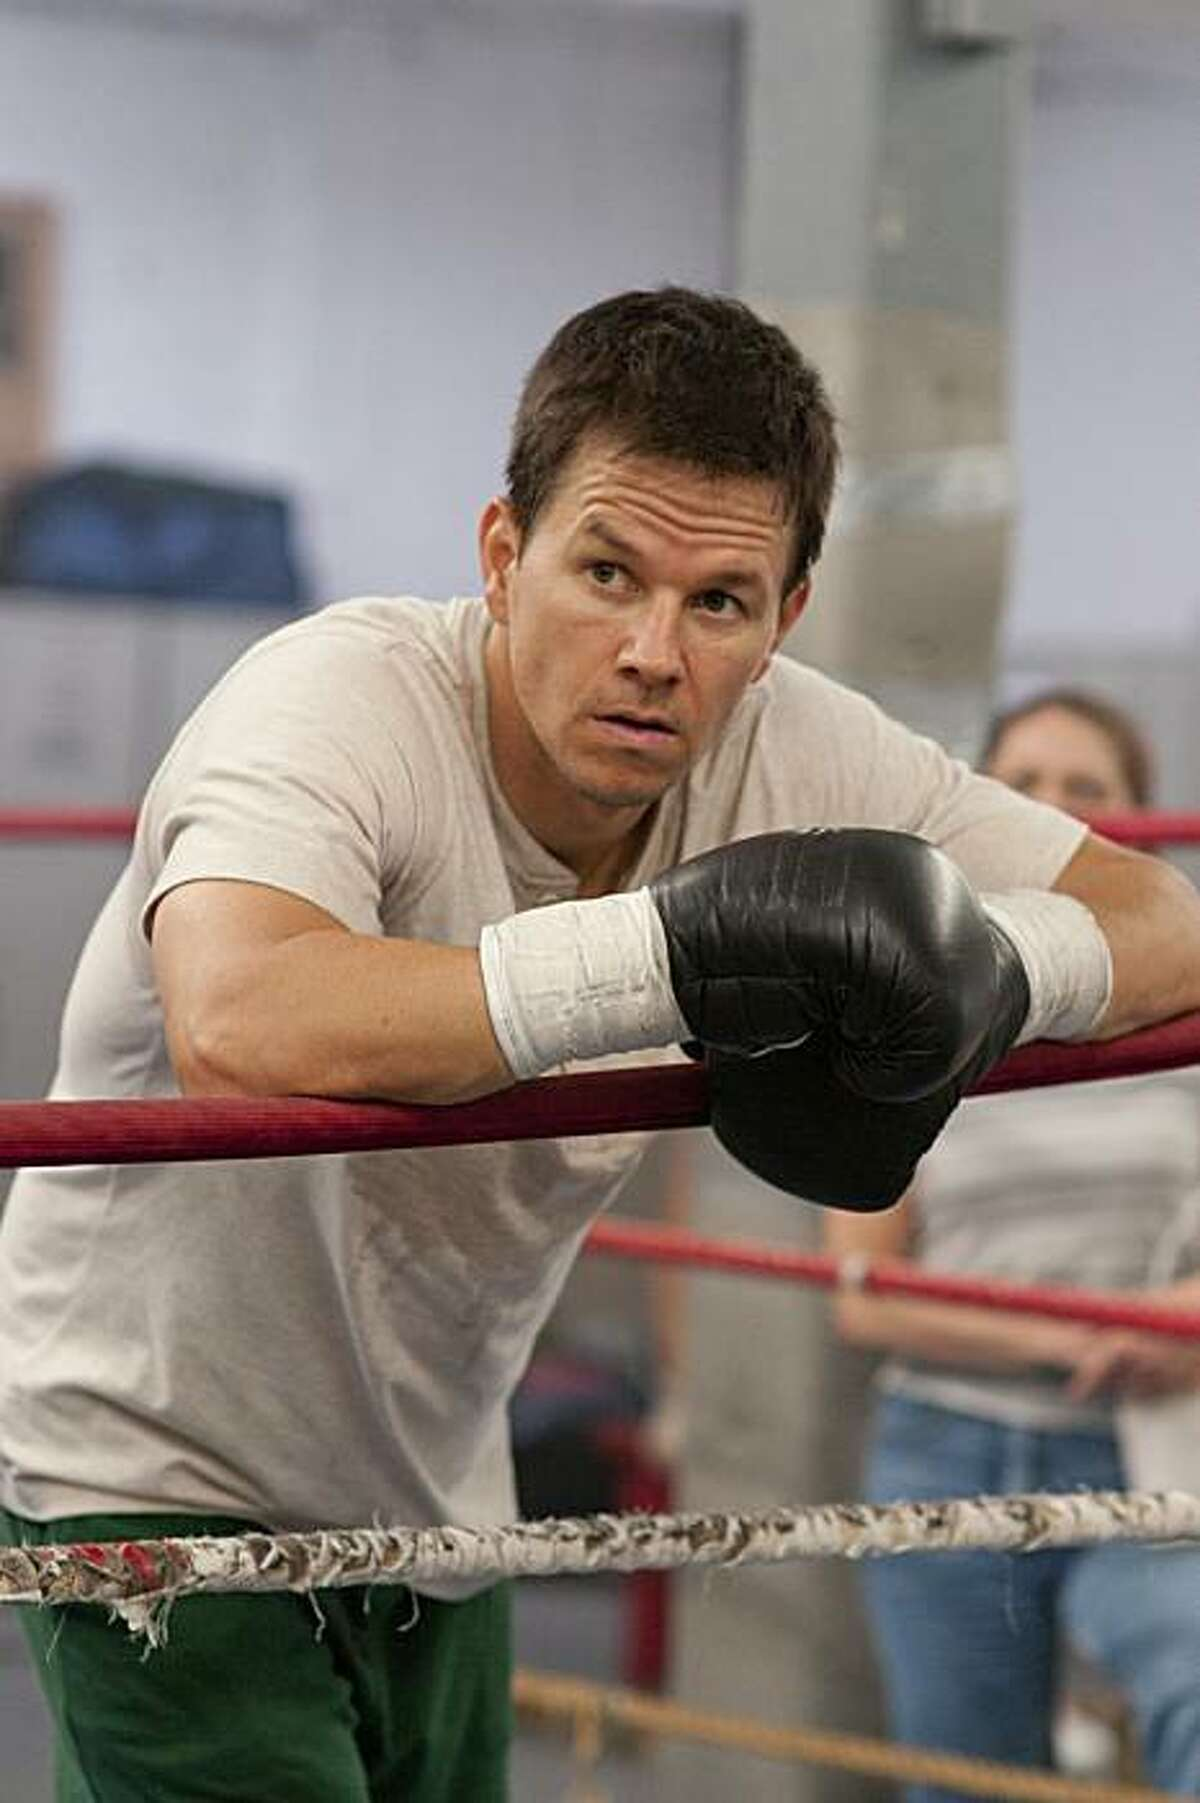 """In this publicity image released by Paramount Pictures, Mark Wahlberg, is shown in a scene from, """"The Fighter."""" Wahlberg was nominated for a Golden Globe for best actor in a motion picture drama, Tuesday, Dec. 14, 2010, for his role in """"The Fighter."""" TheGolden Globe awards will air on Jan. 16 on NBC."""